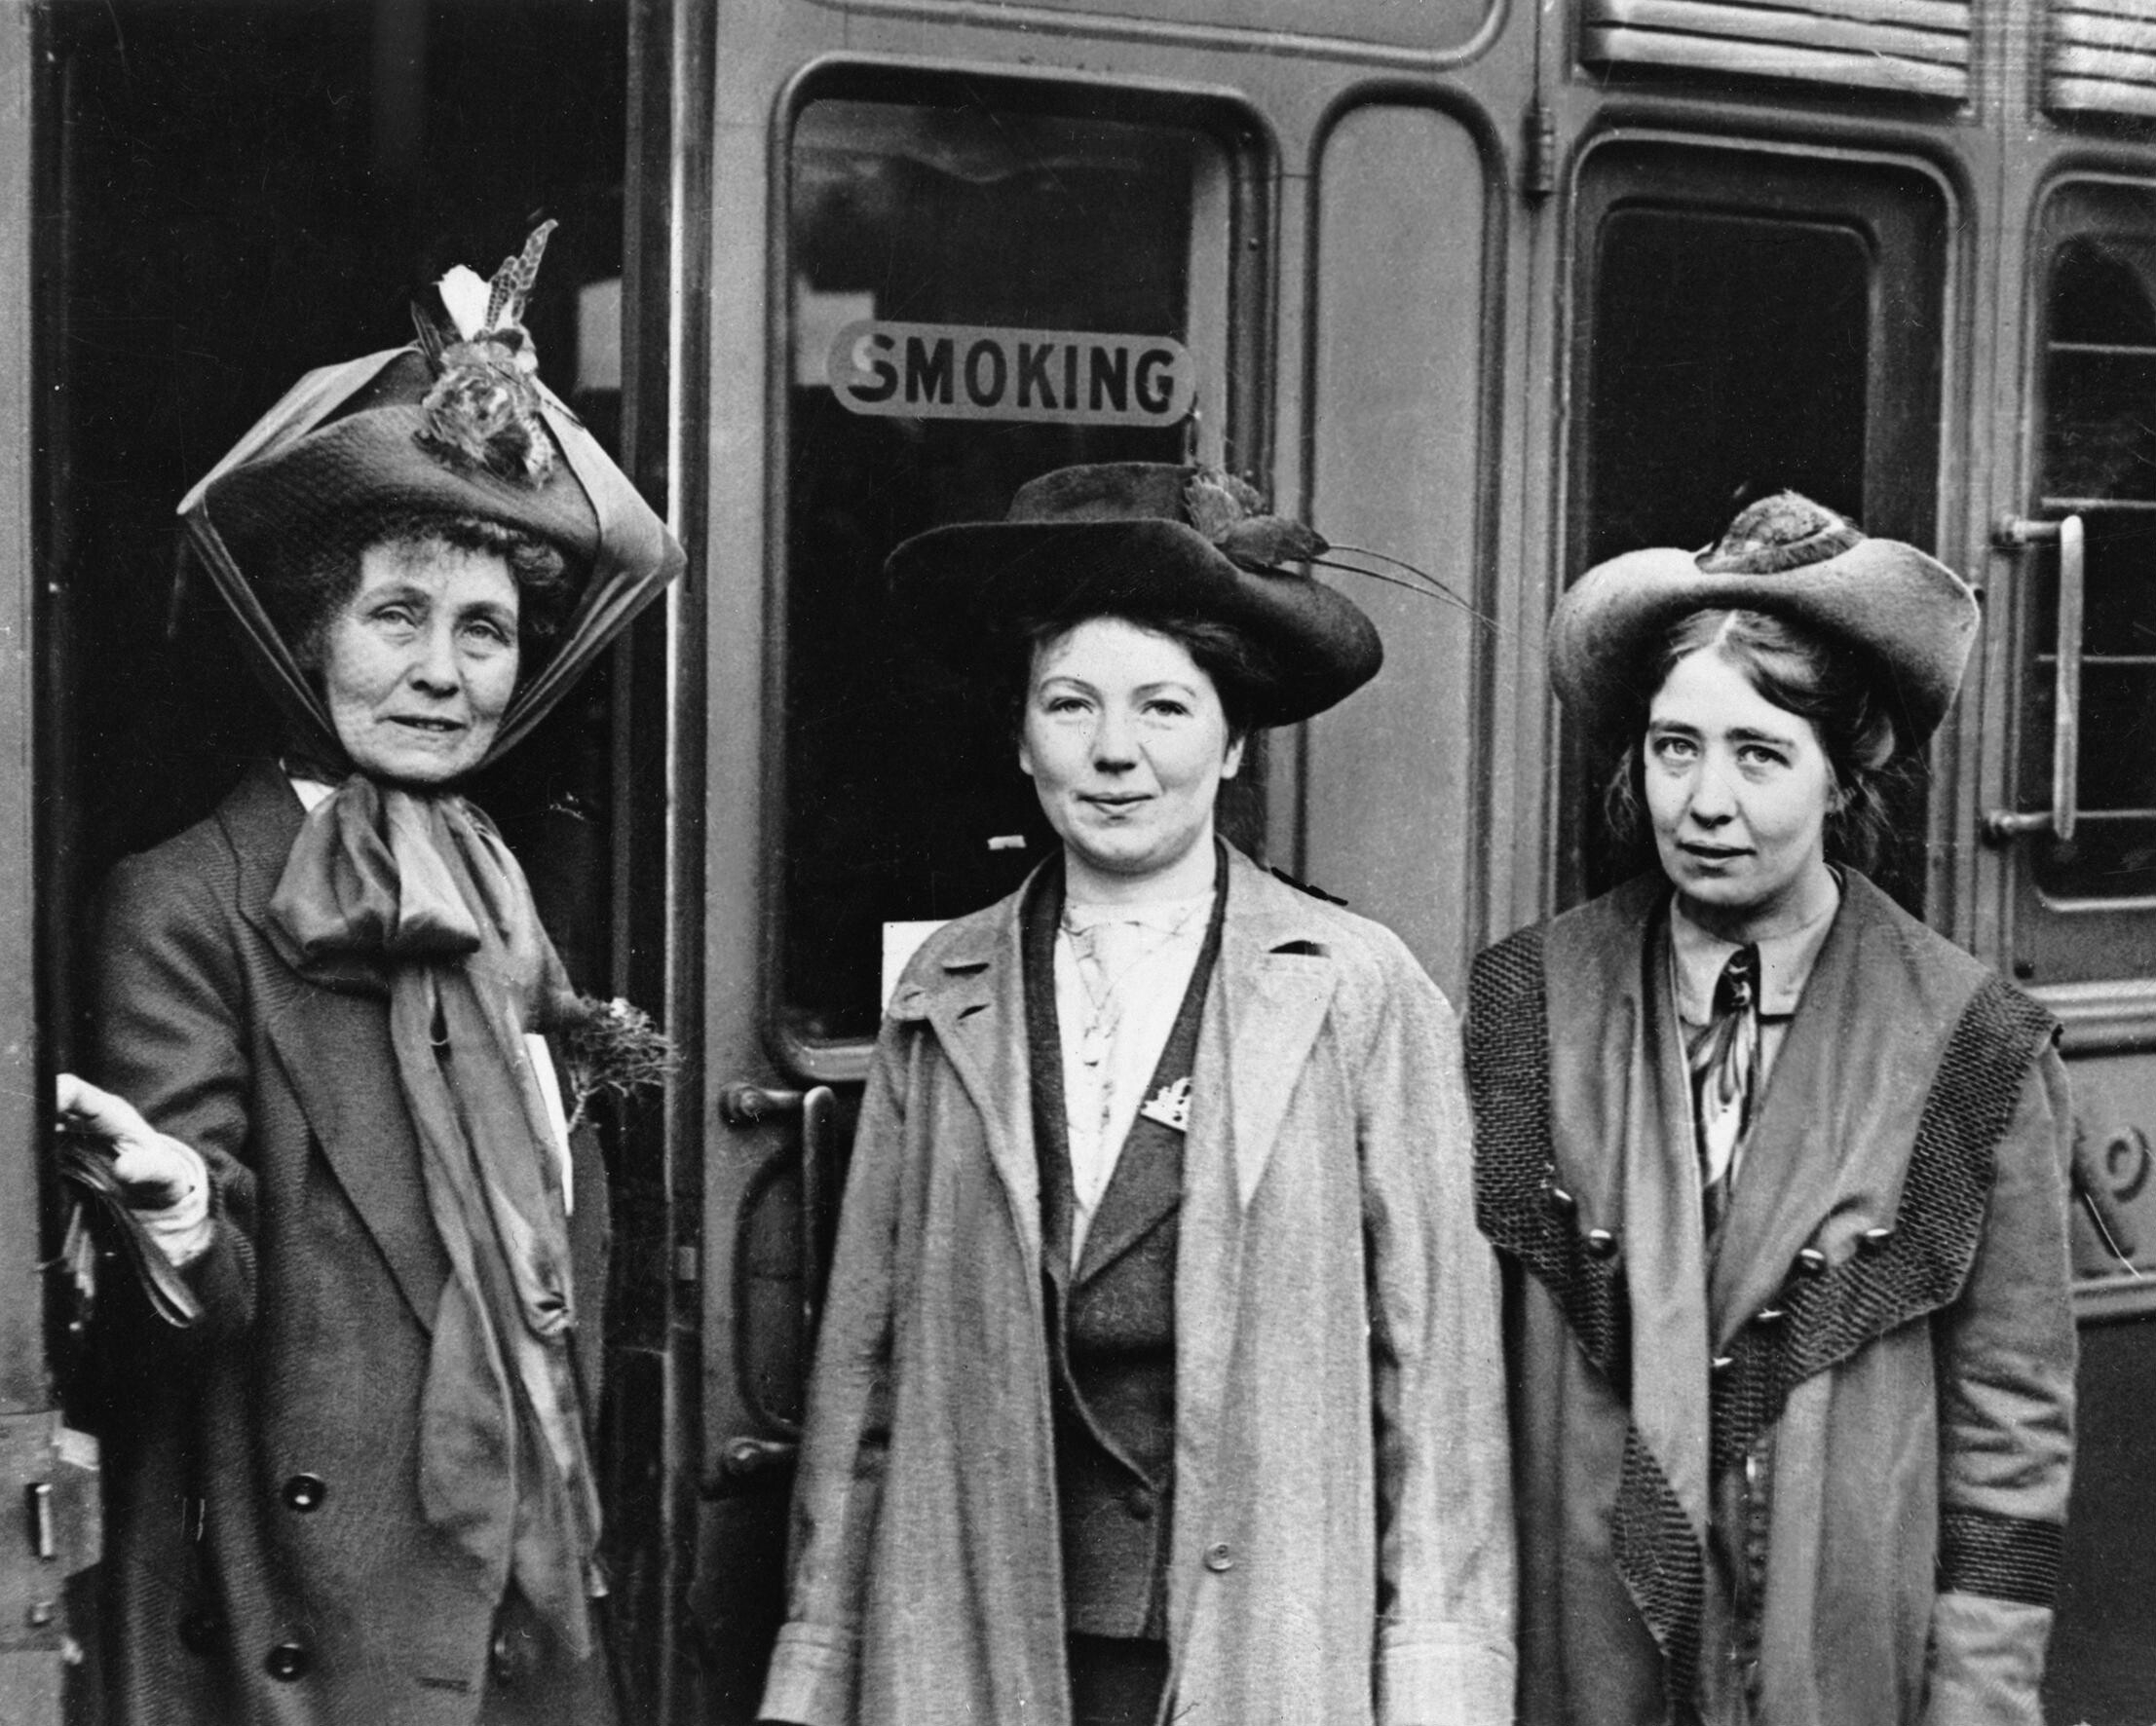 Suffragettes100: Who do you know who embodies the spirit of the suffragettes?